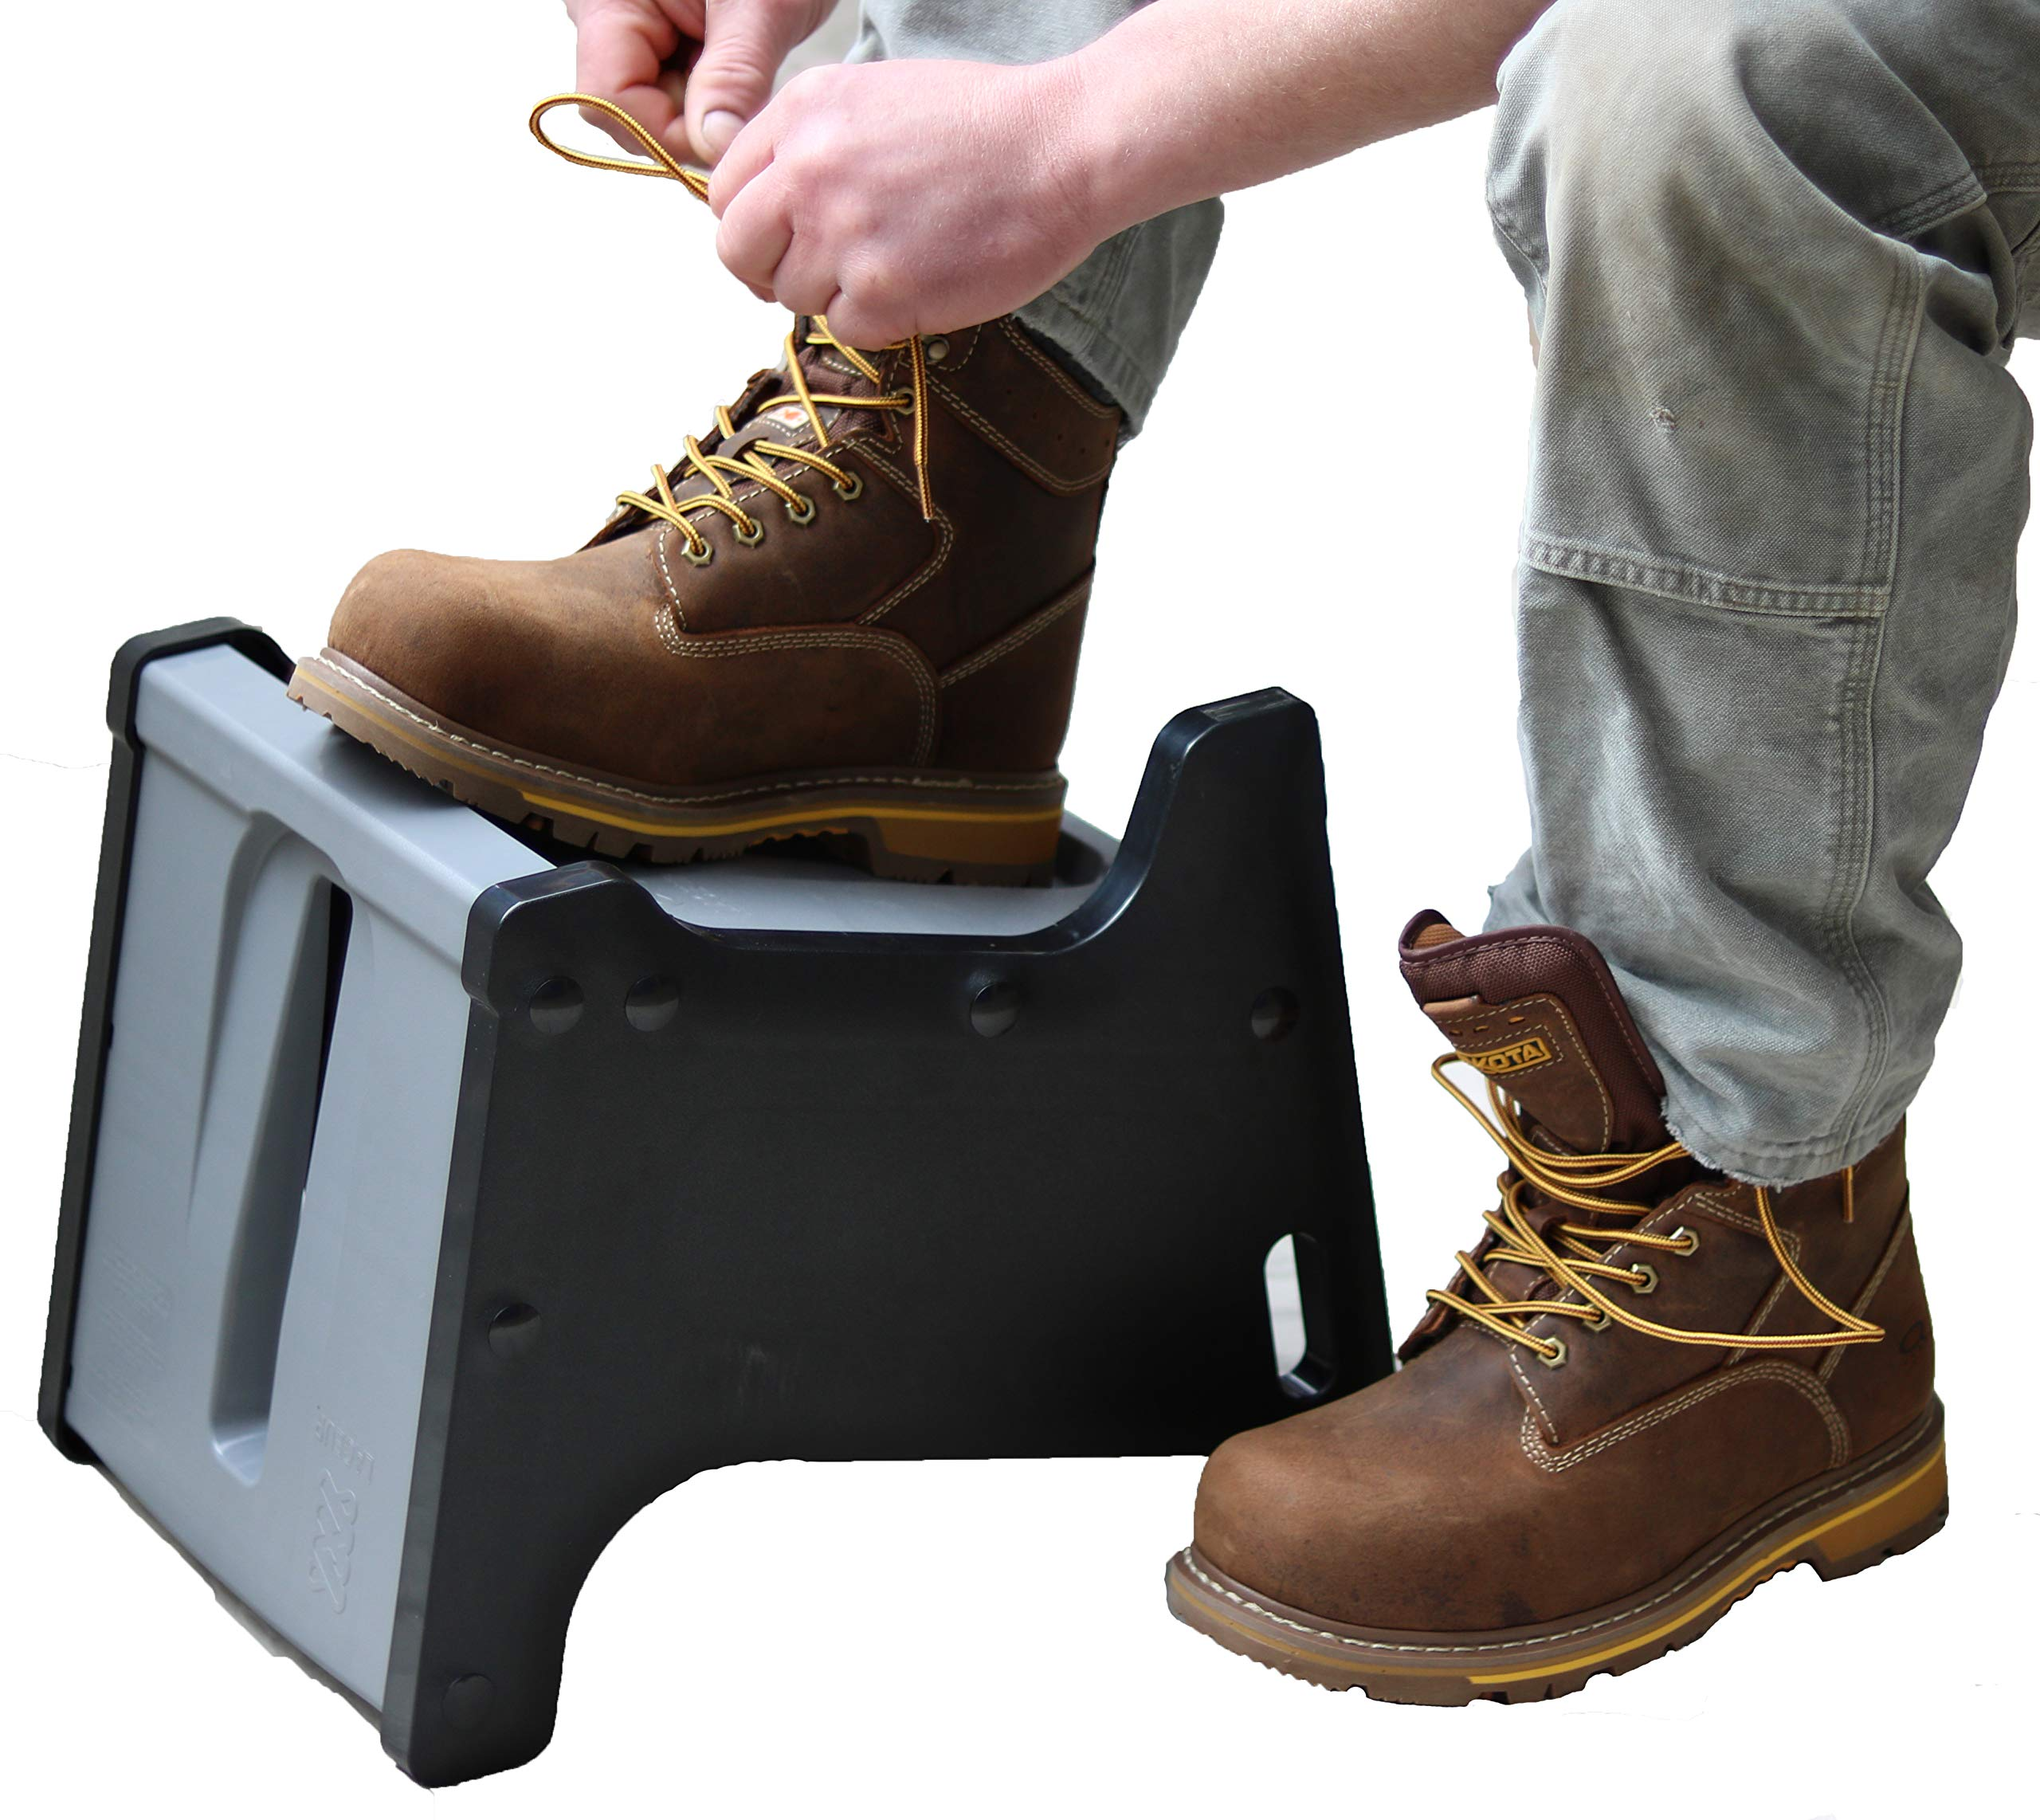 LACEUP Practice Good Ergonomics, Sock Aid & Shoe Assist Device Helps Elderly, Kids, Pregnant Women, Athletes & People with Limited Mobility. Non-Slip Shoe Block with 2 Sitting and Standing Heights. by LACEUP